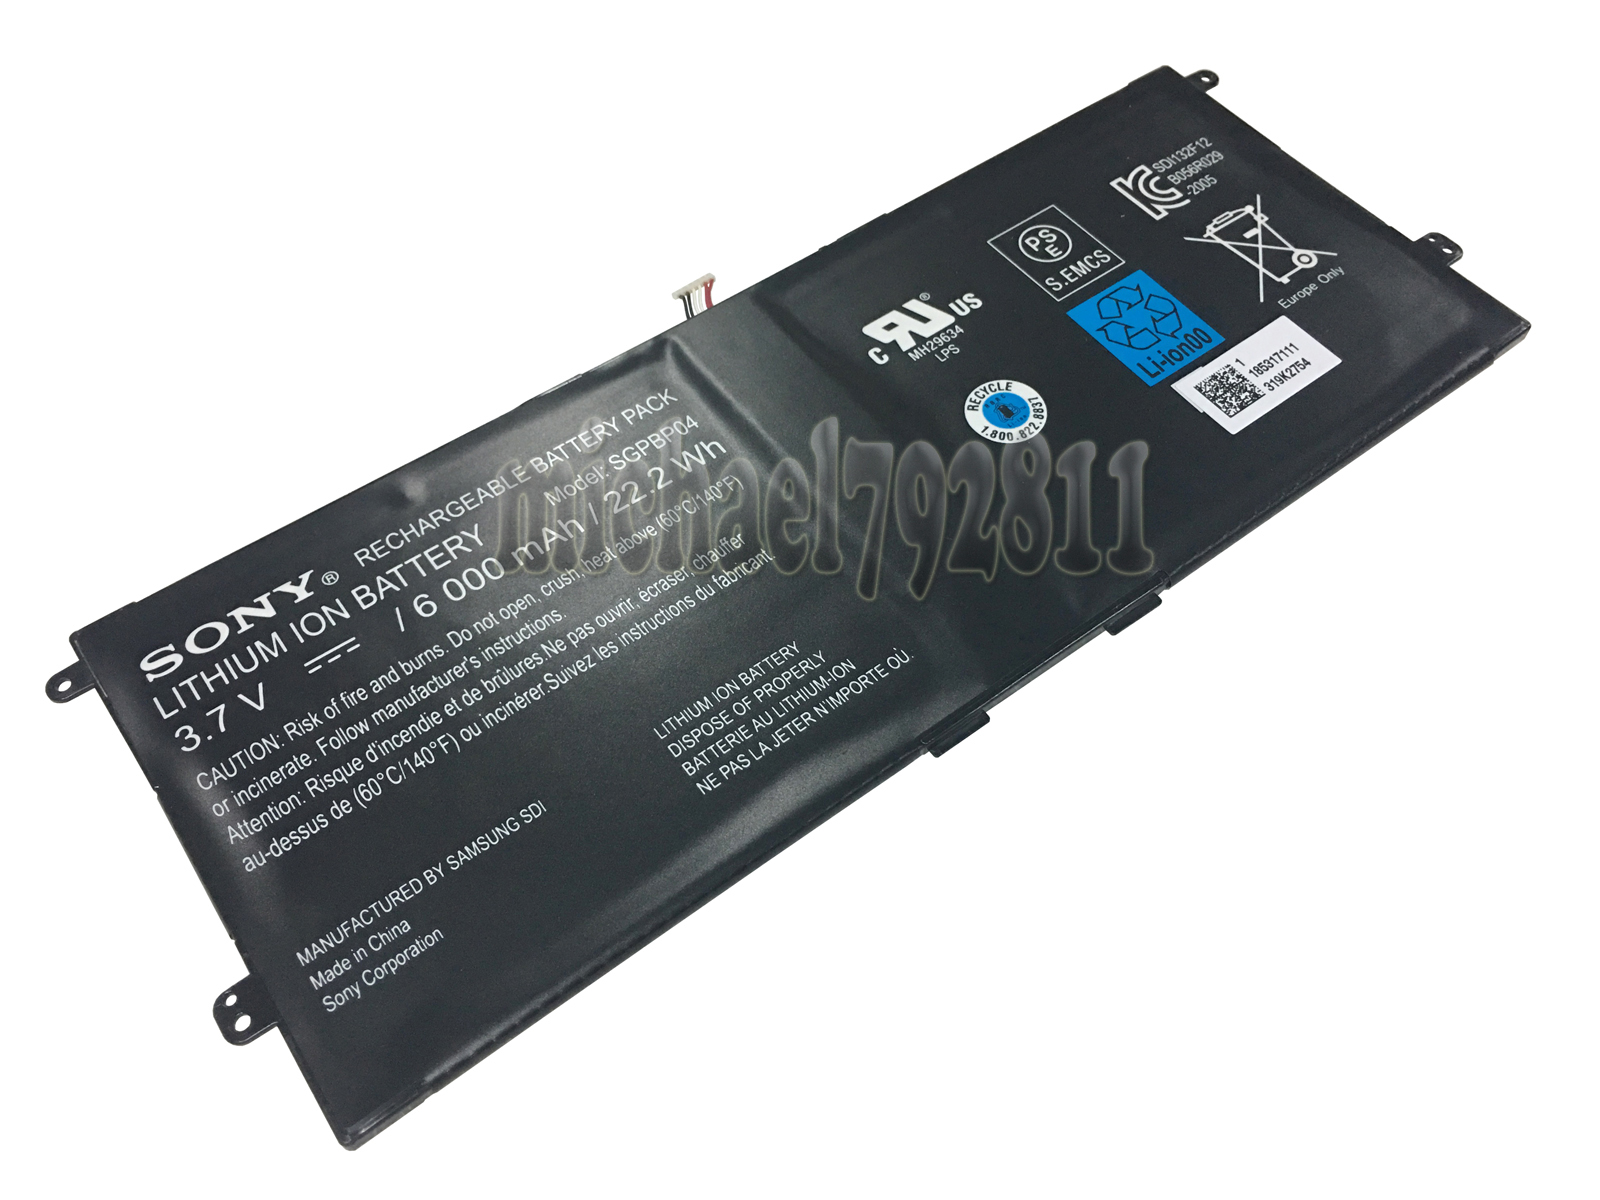 Details about Genuine Battery for SONY Xperia Tablet S Series PCG-C1R  PCG-C1S PCG-C1X SGPBP04